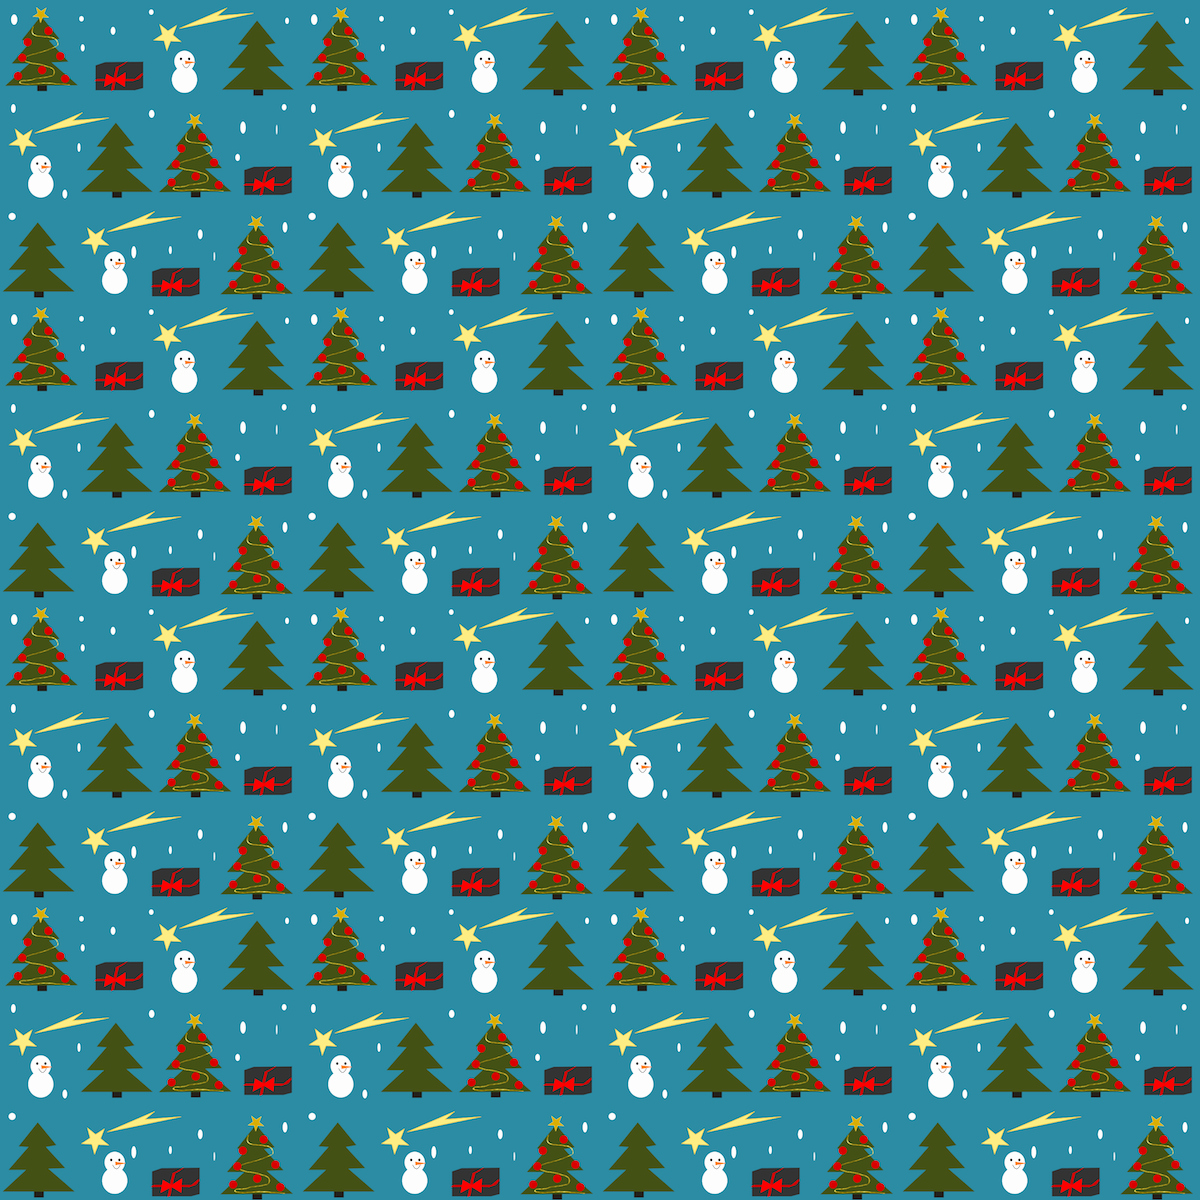 Christmas Paper to Print Unique Free Printable Christmas Joy Wrapping Paper